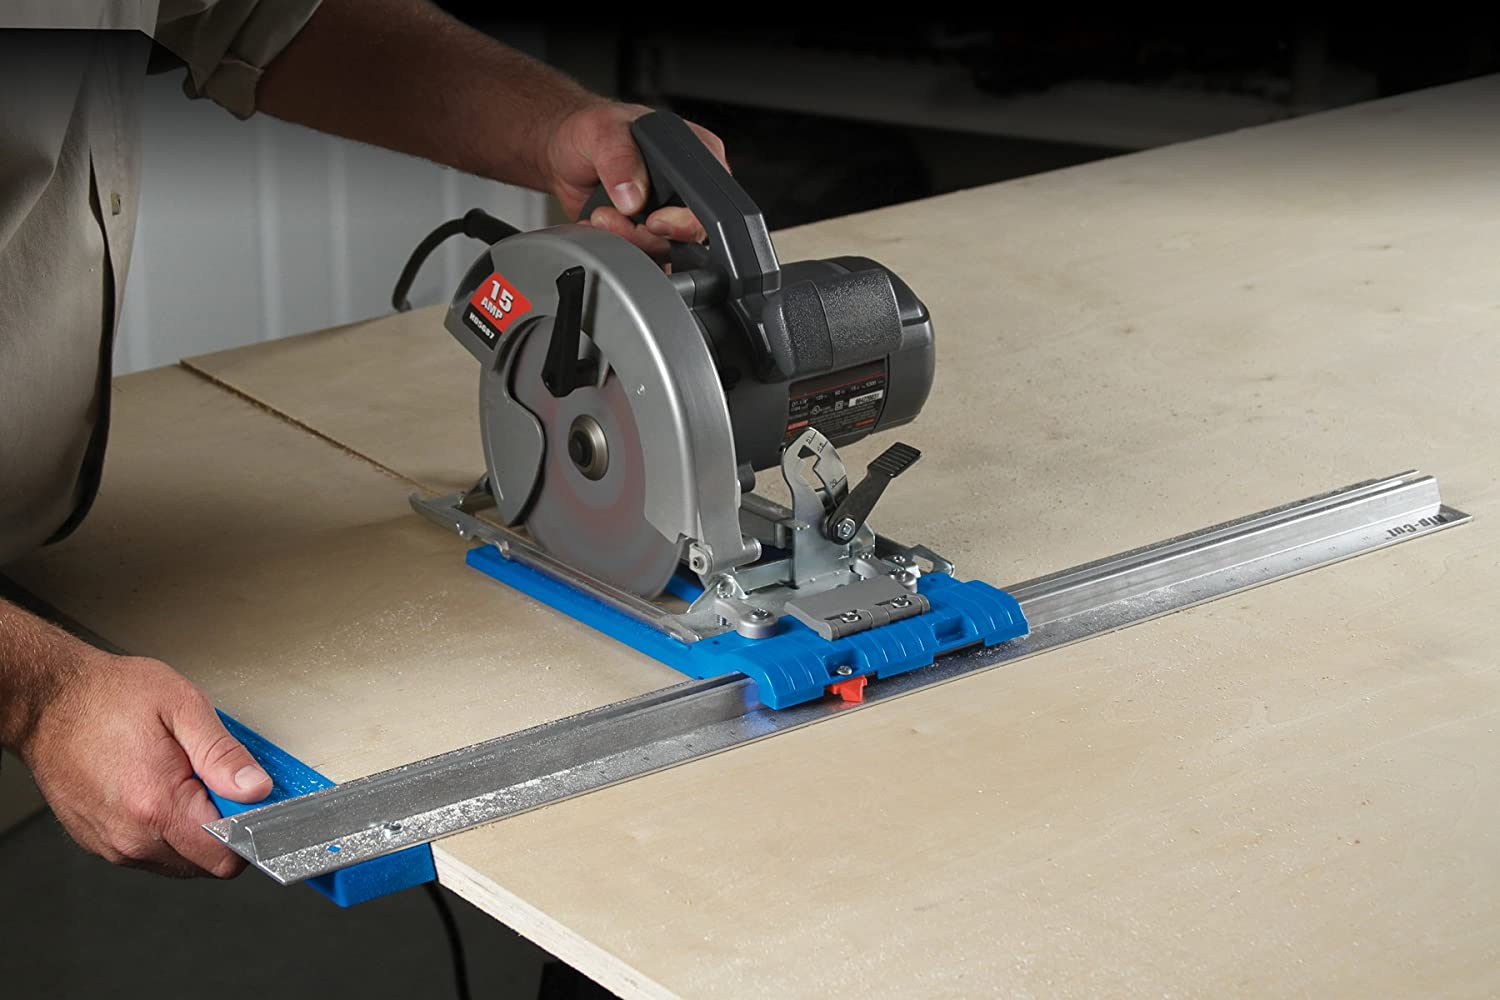 Kreg KMA2675 Kreg Rip-Cut - Power Jig Saw Accessories - Amazon.com